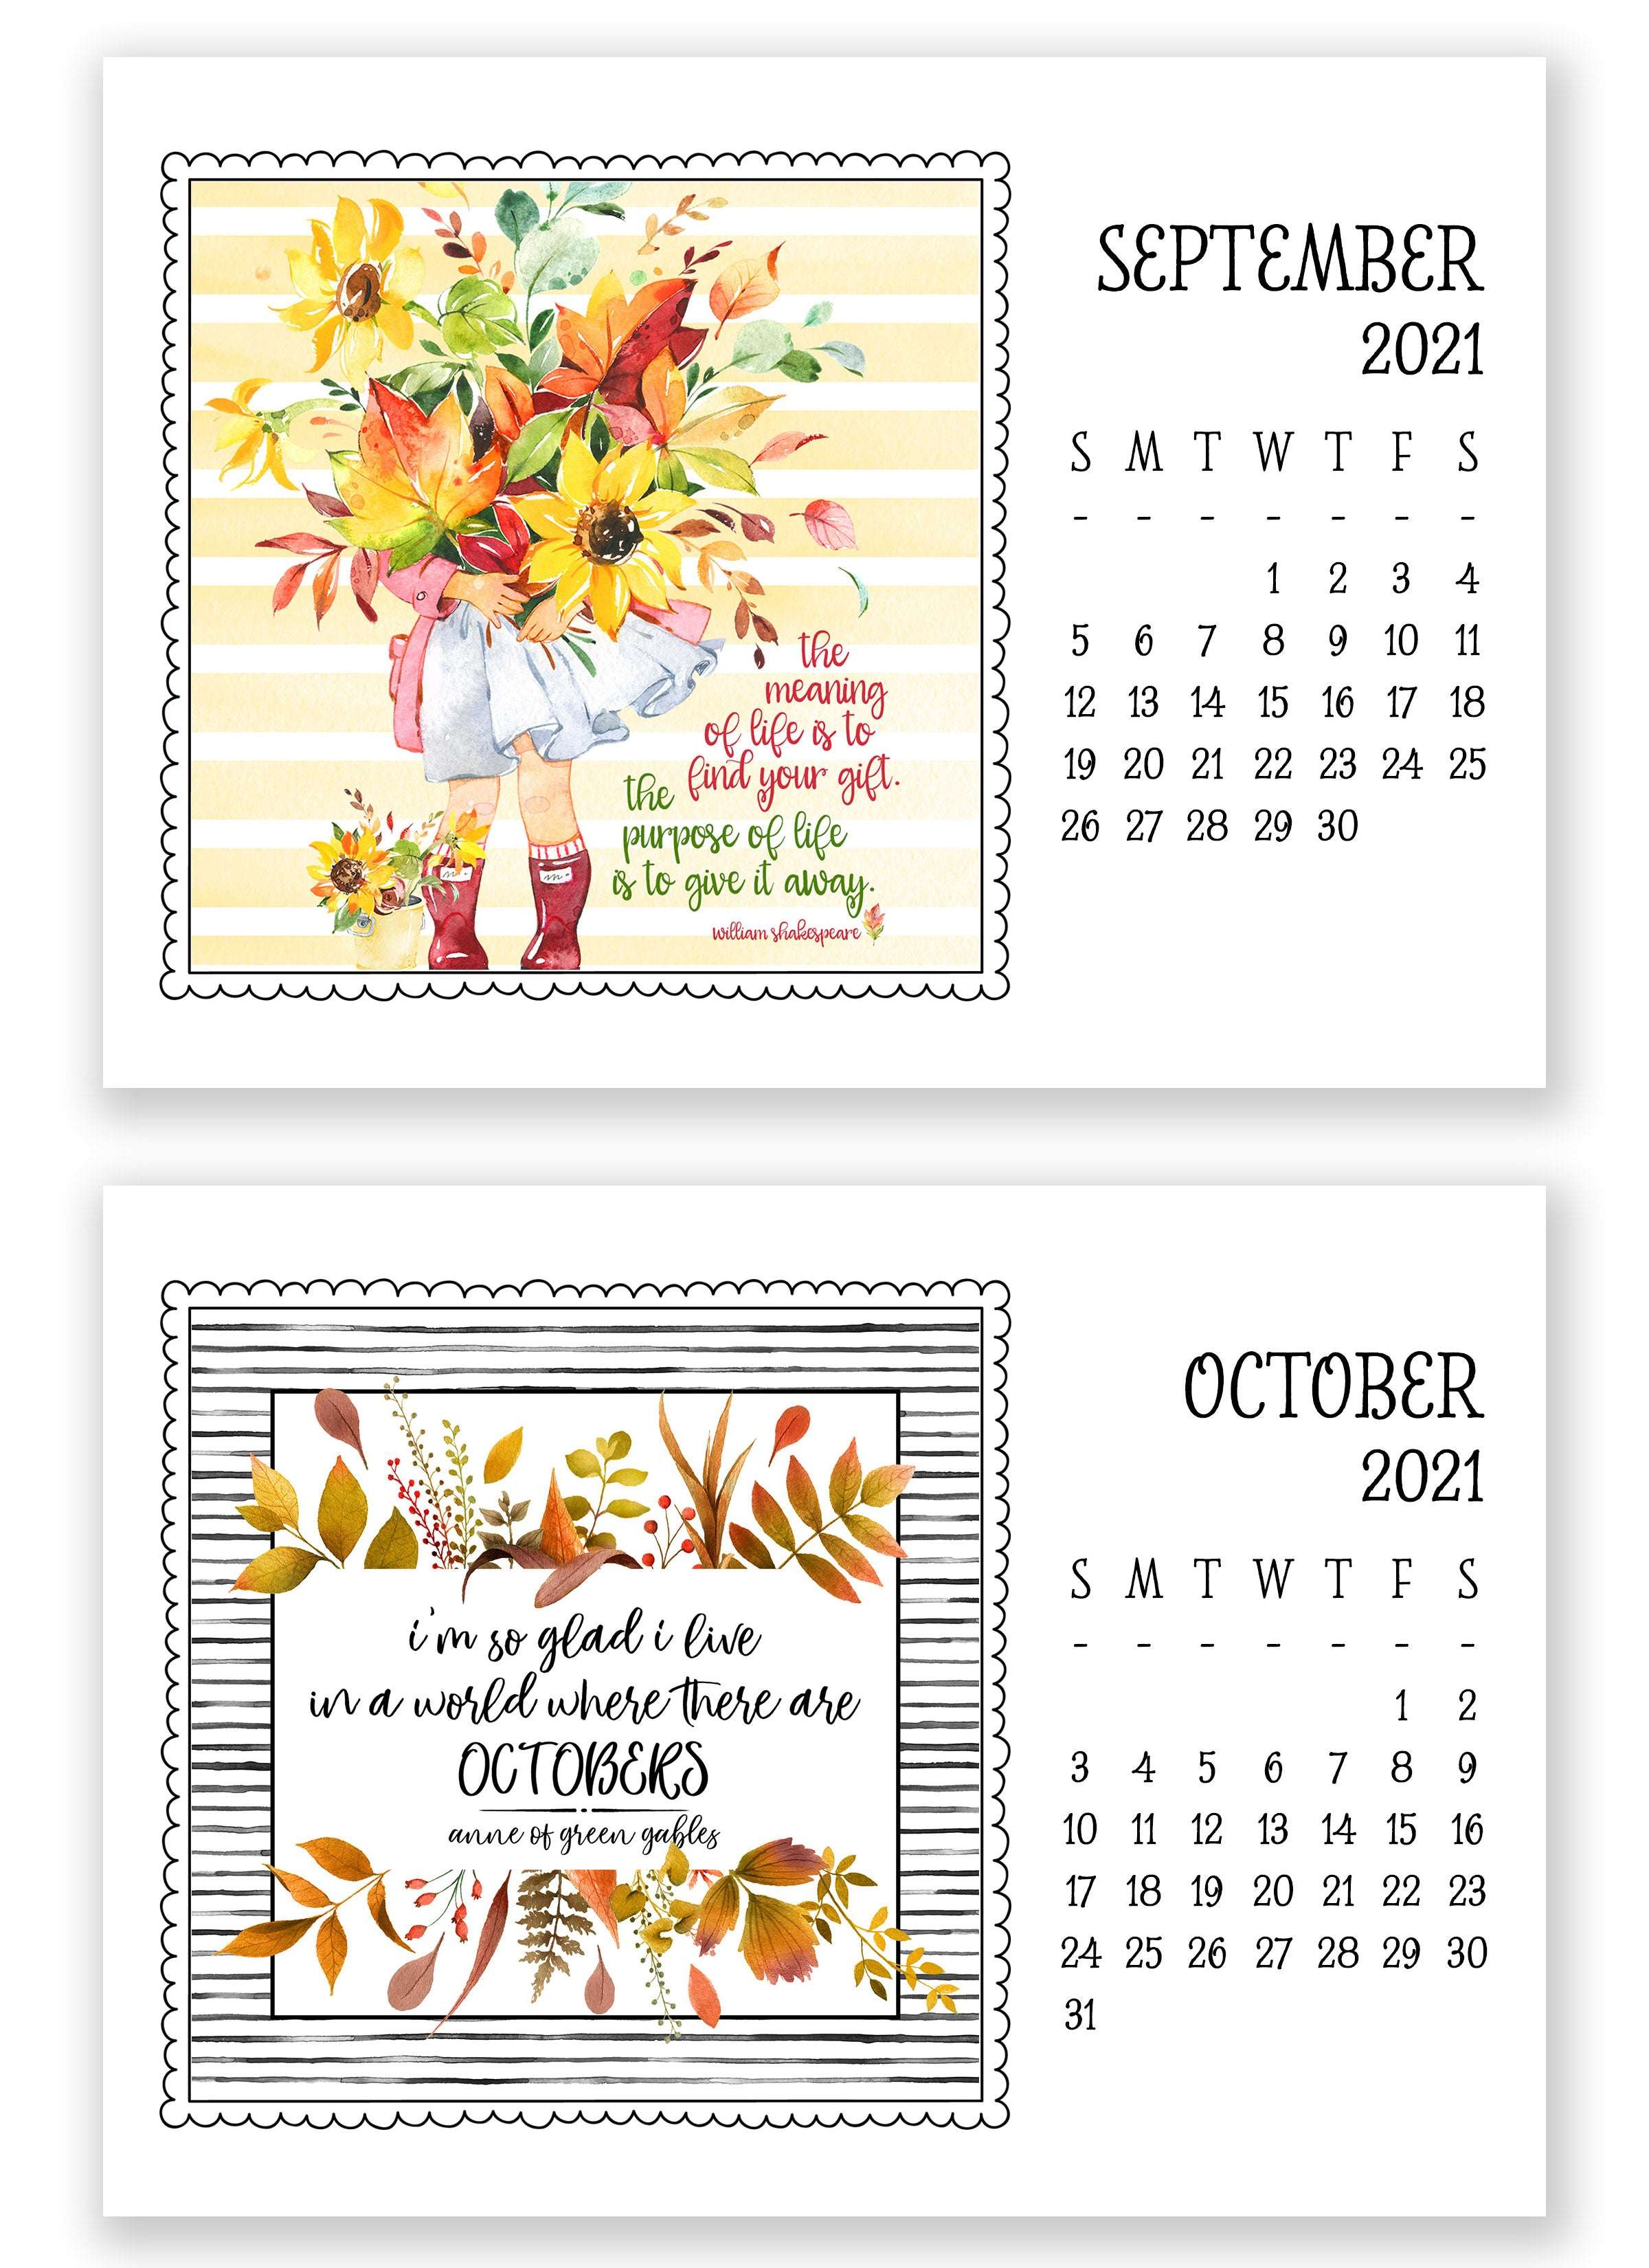 2021 Little Lift Calendar (Refill)